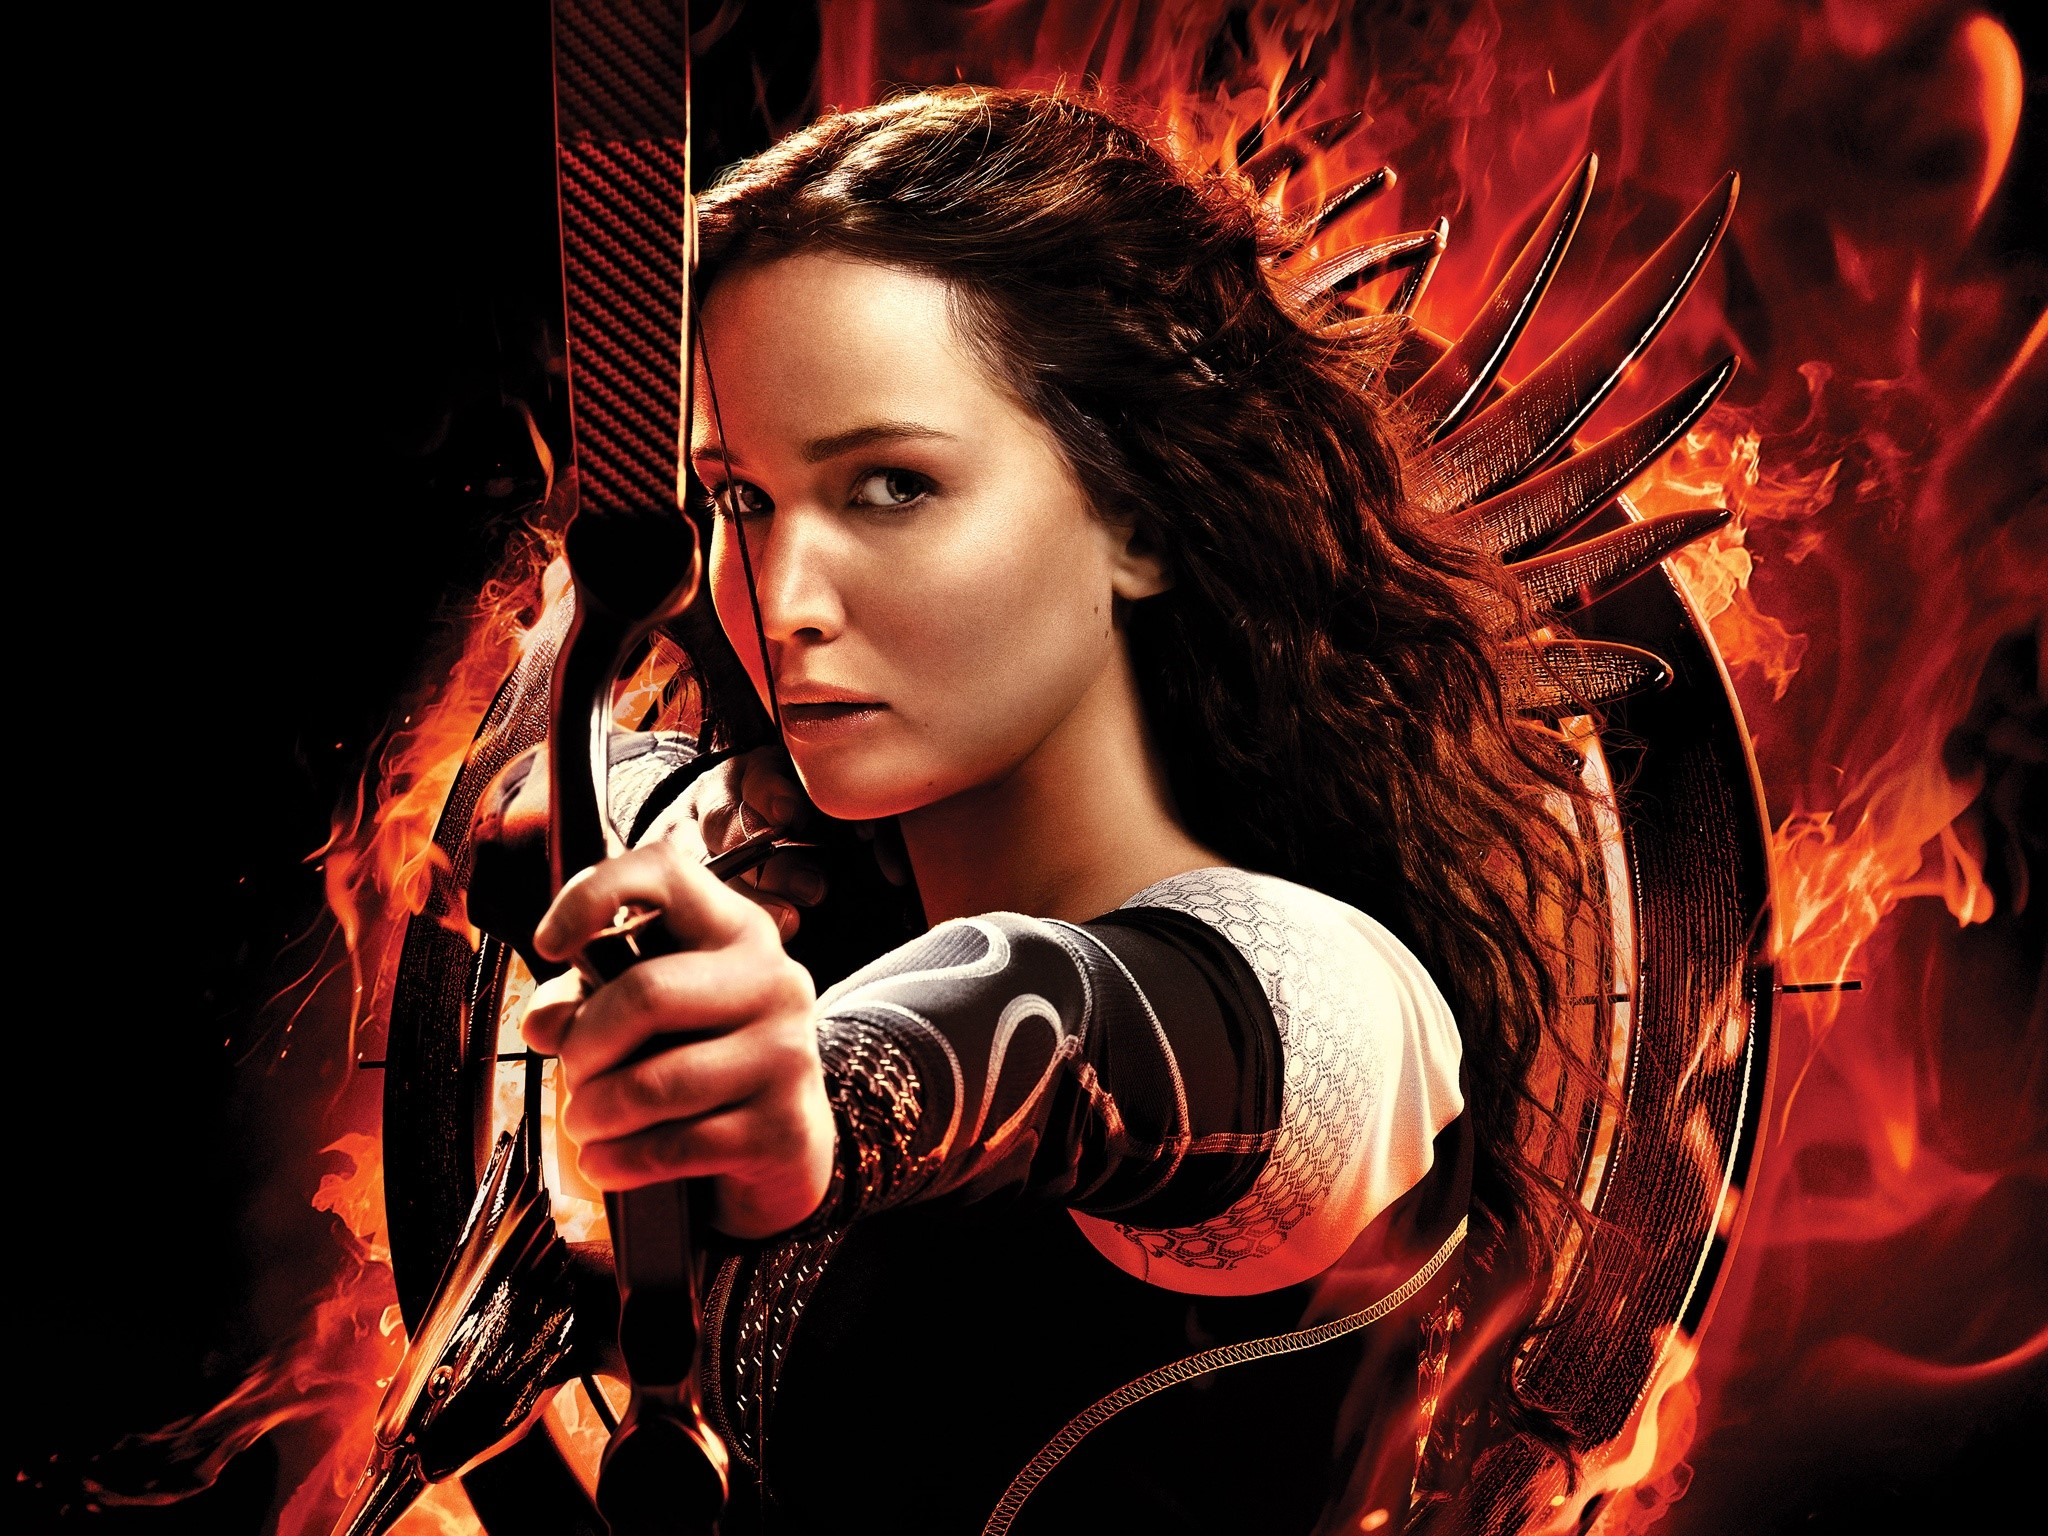 Katniss for Catching Fire Wallpaper ID442 2048x1536